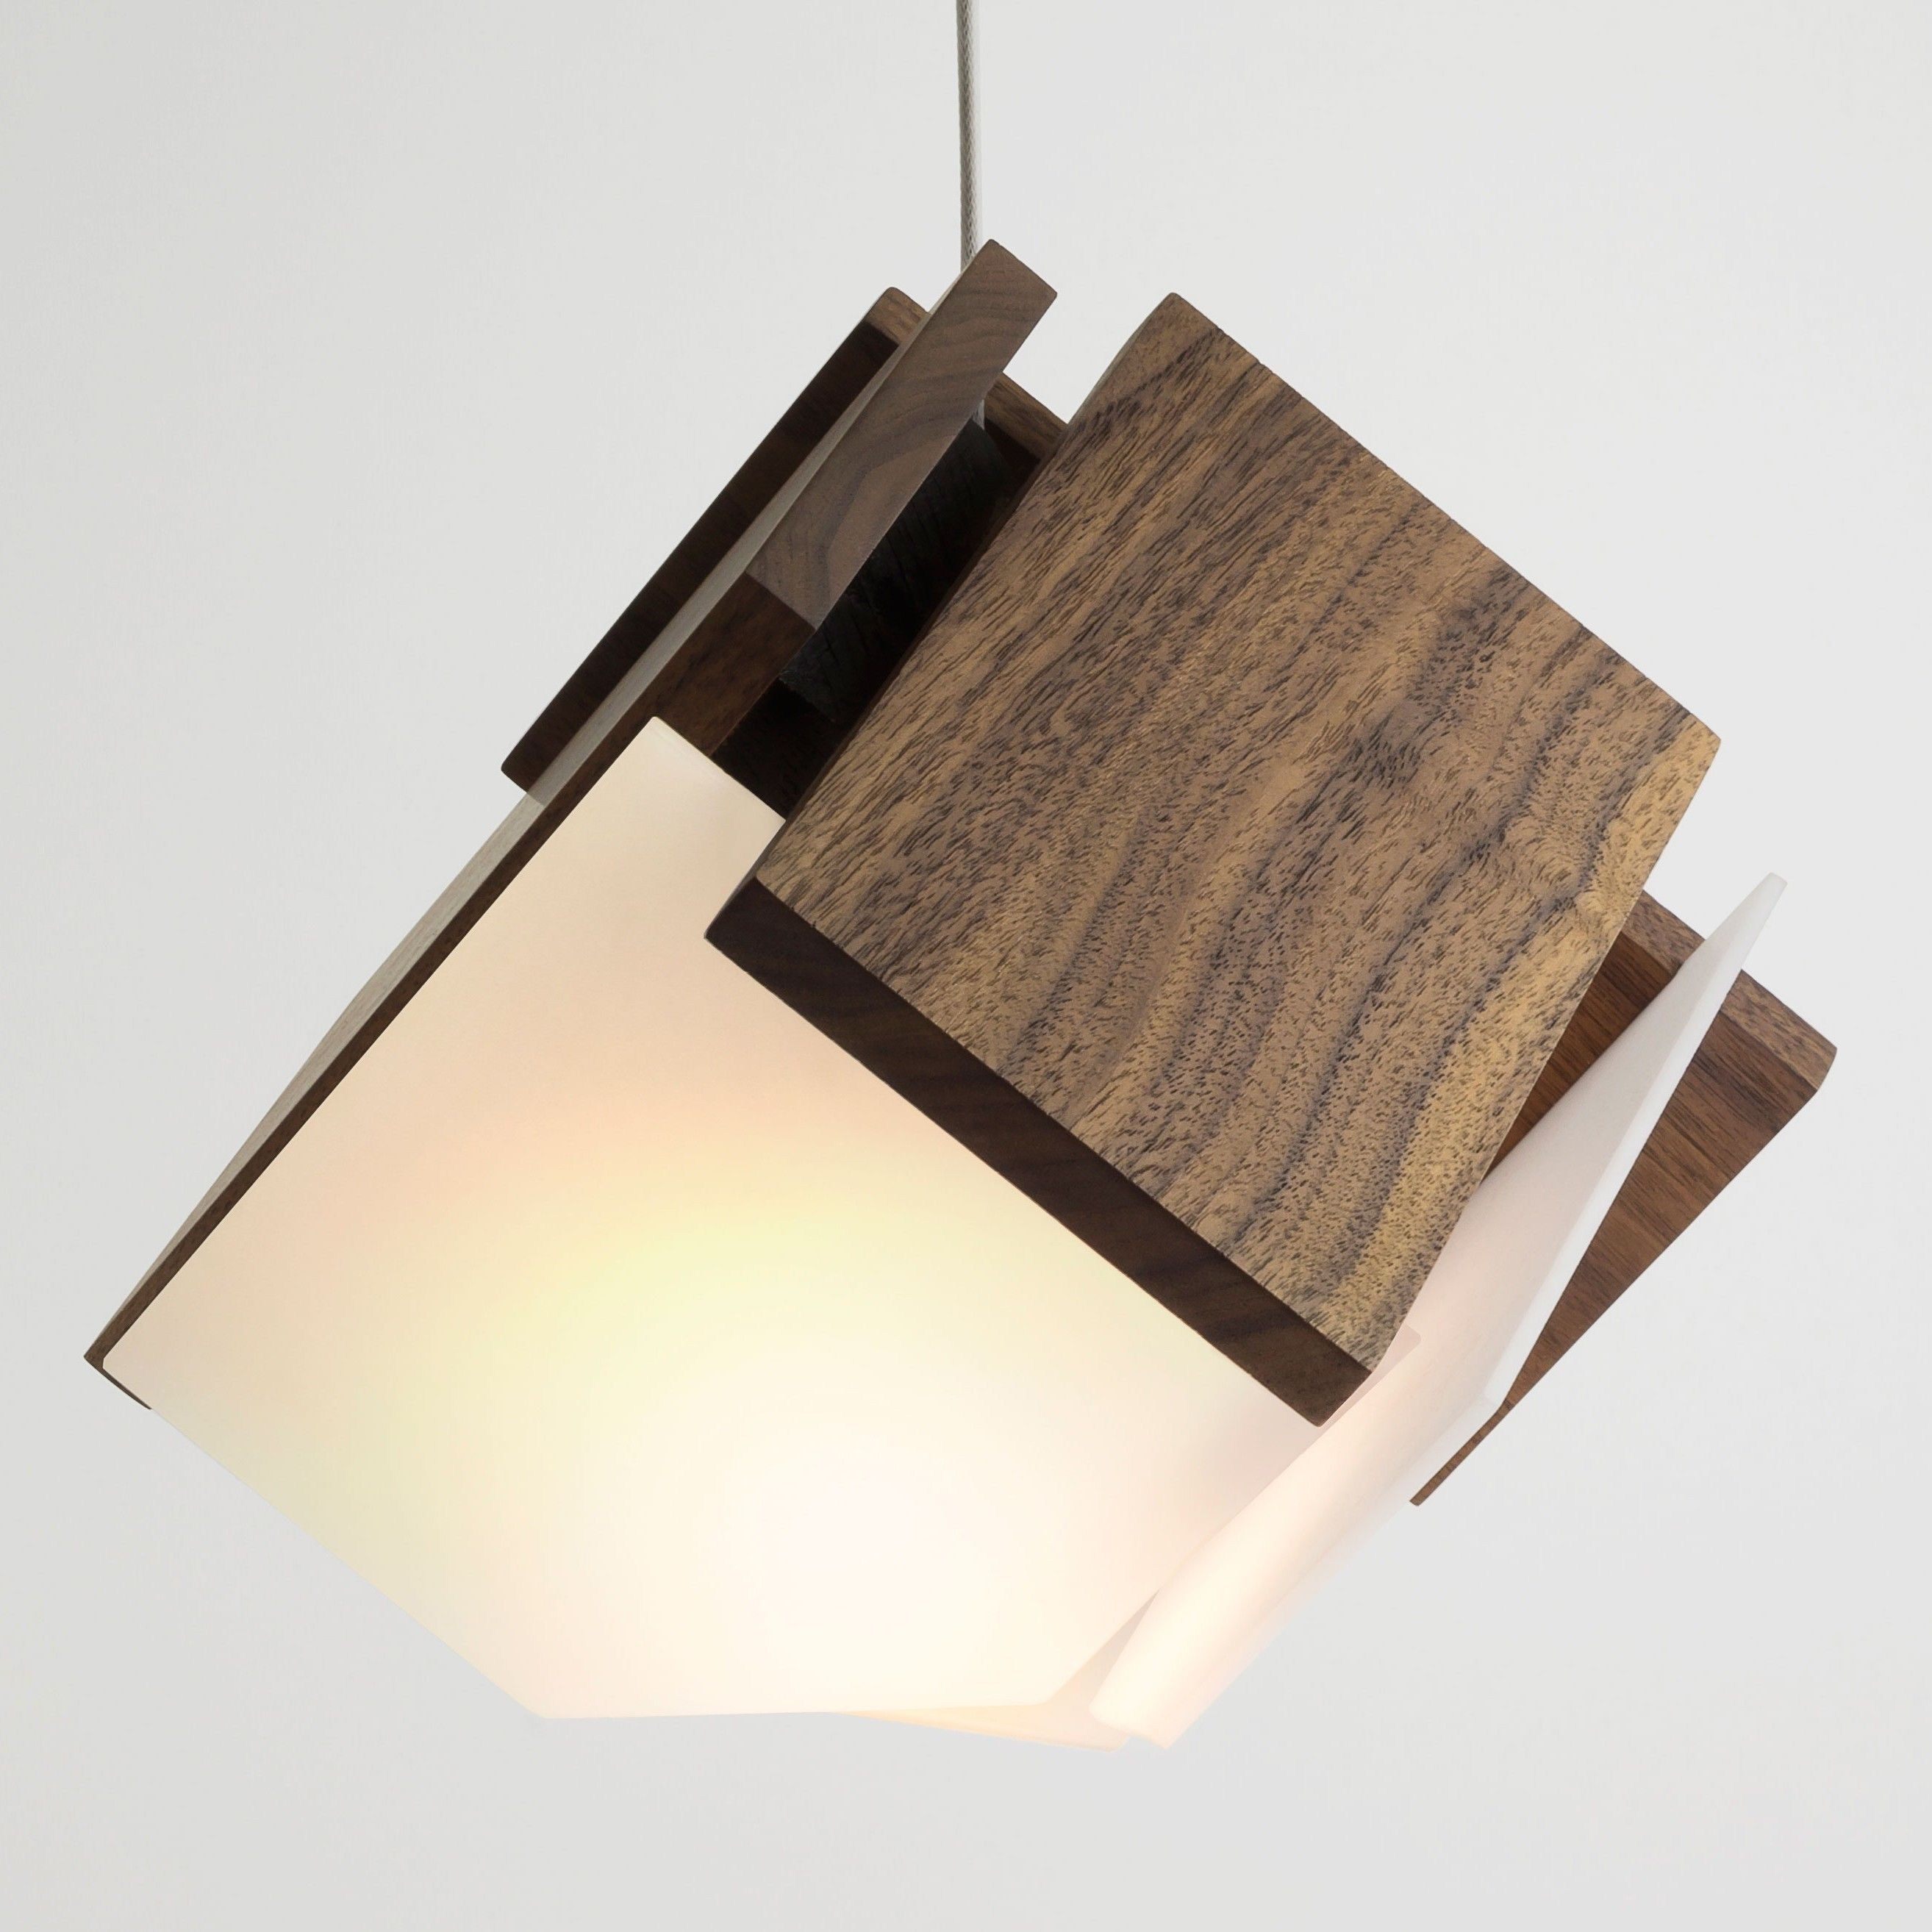 small size fixtures with table light gold white lamp shades decoration mica of shade crackle etched lamps art full brown sale design for replacement globes replacements pendant home red glass and